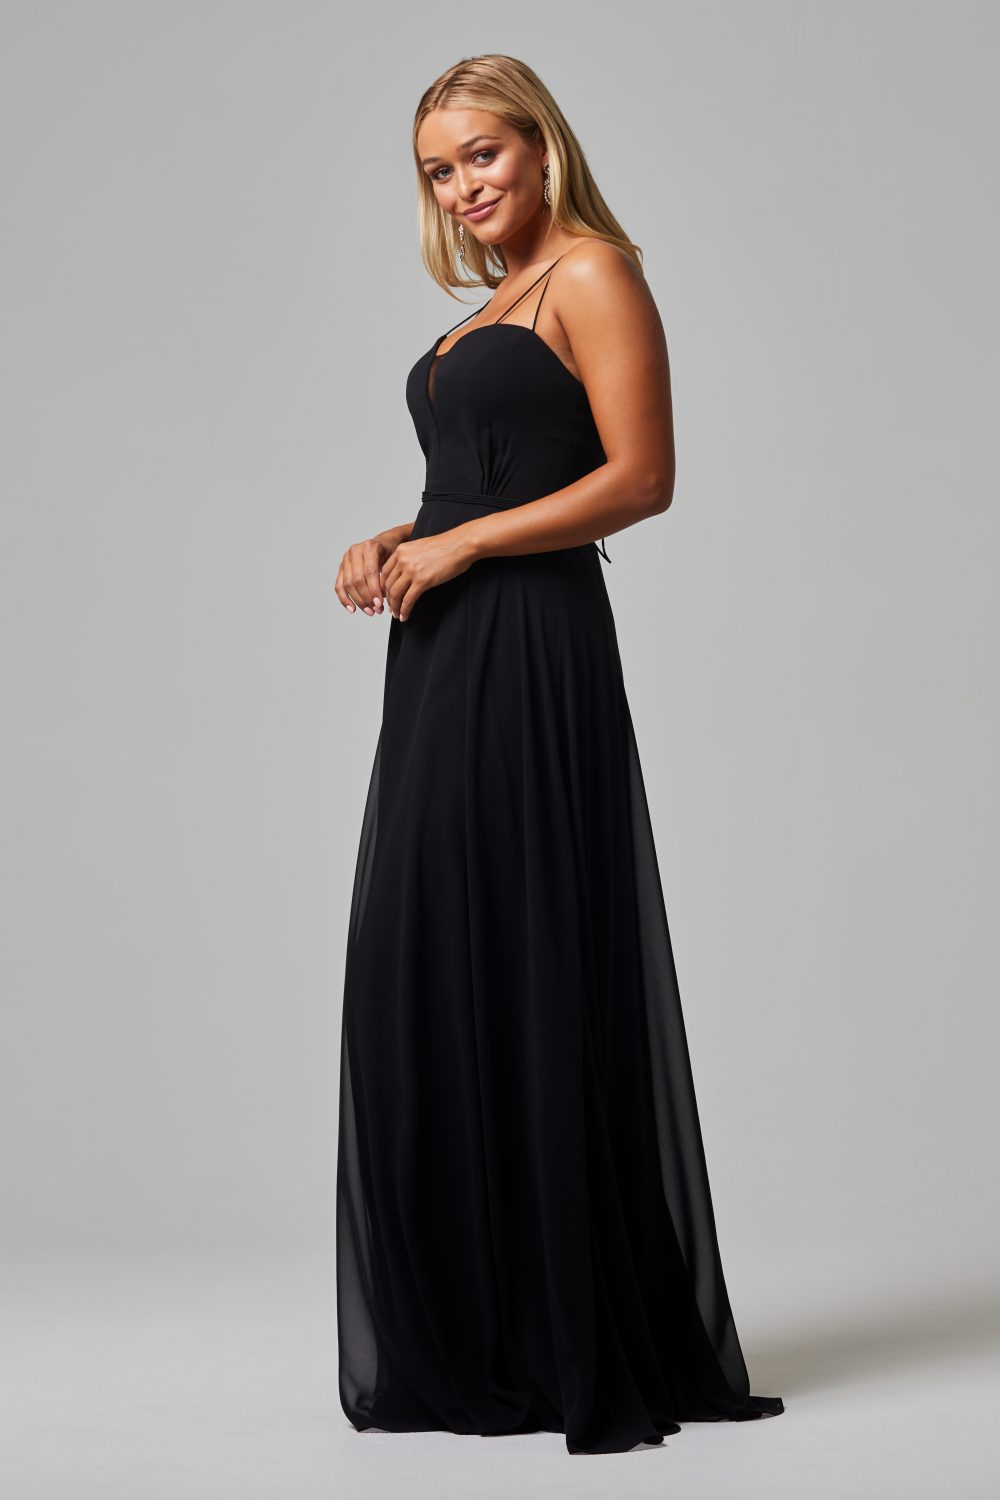 Freda Bridesmaid Dress BLACK side